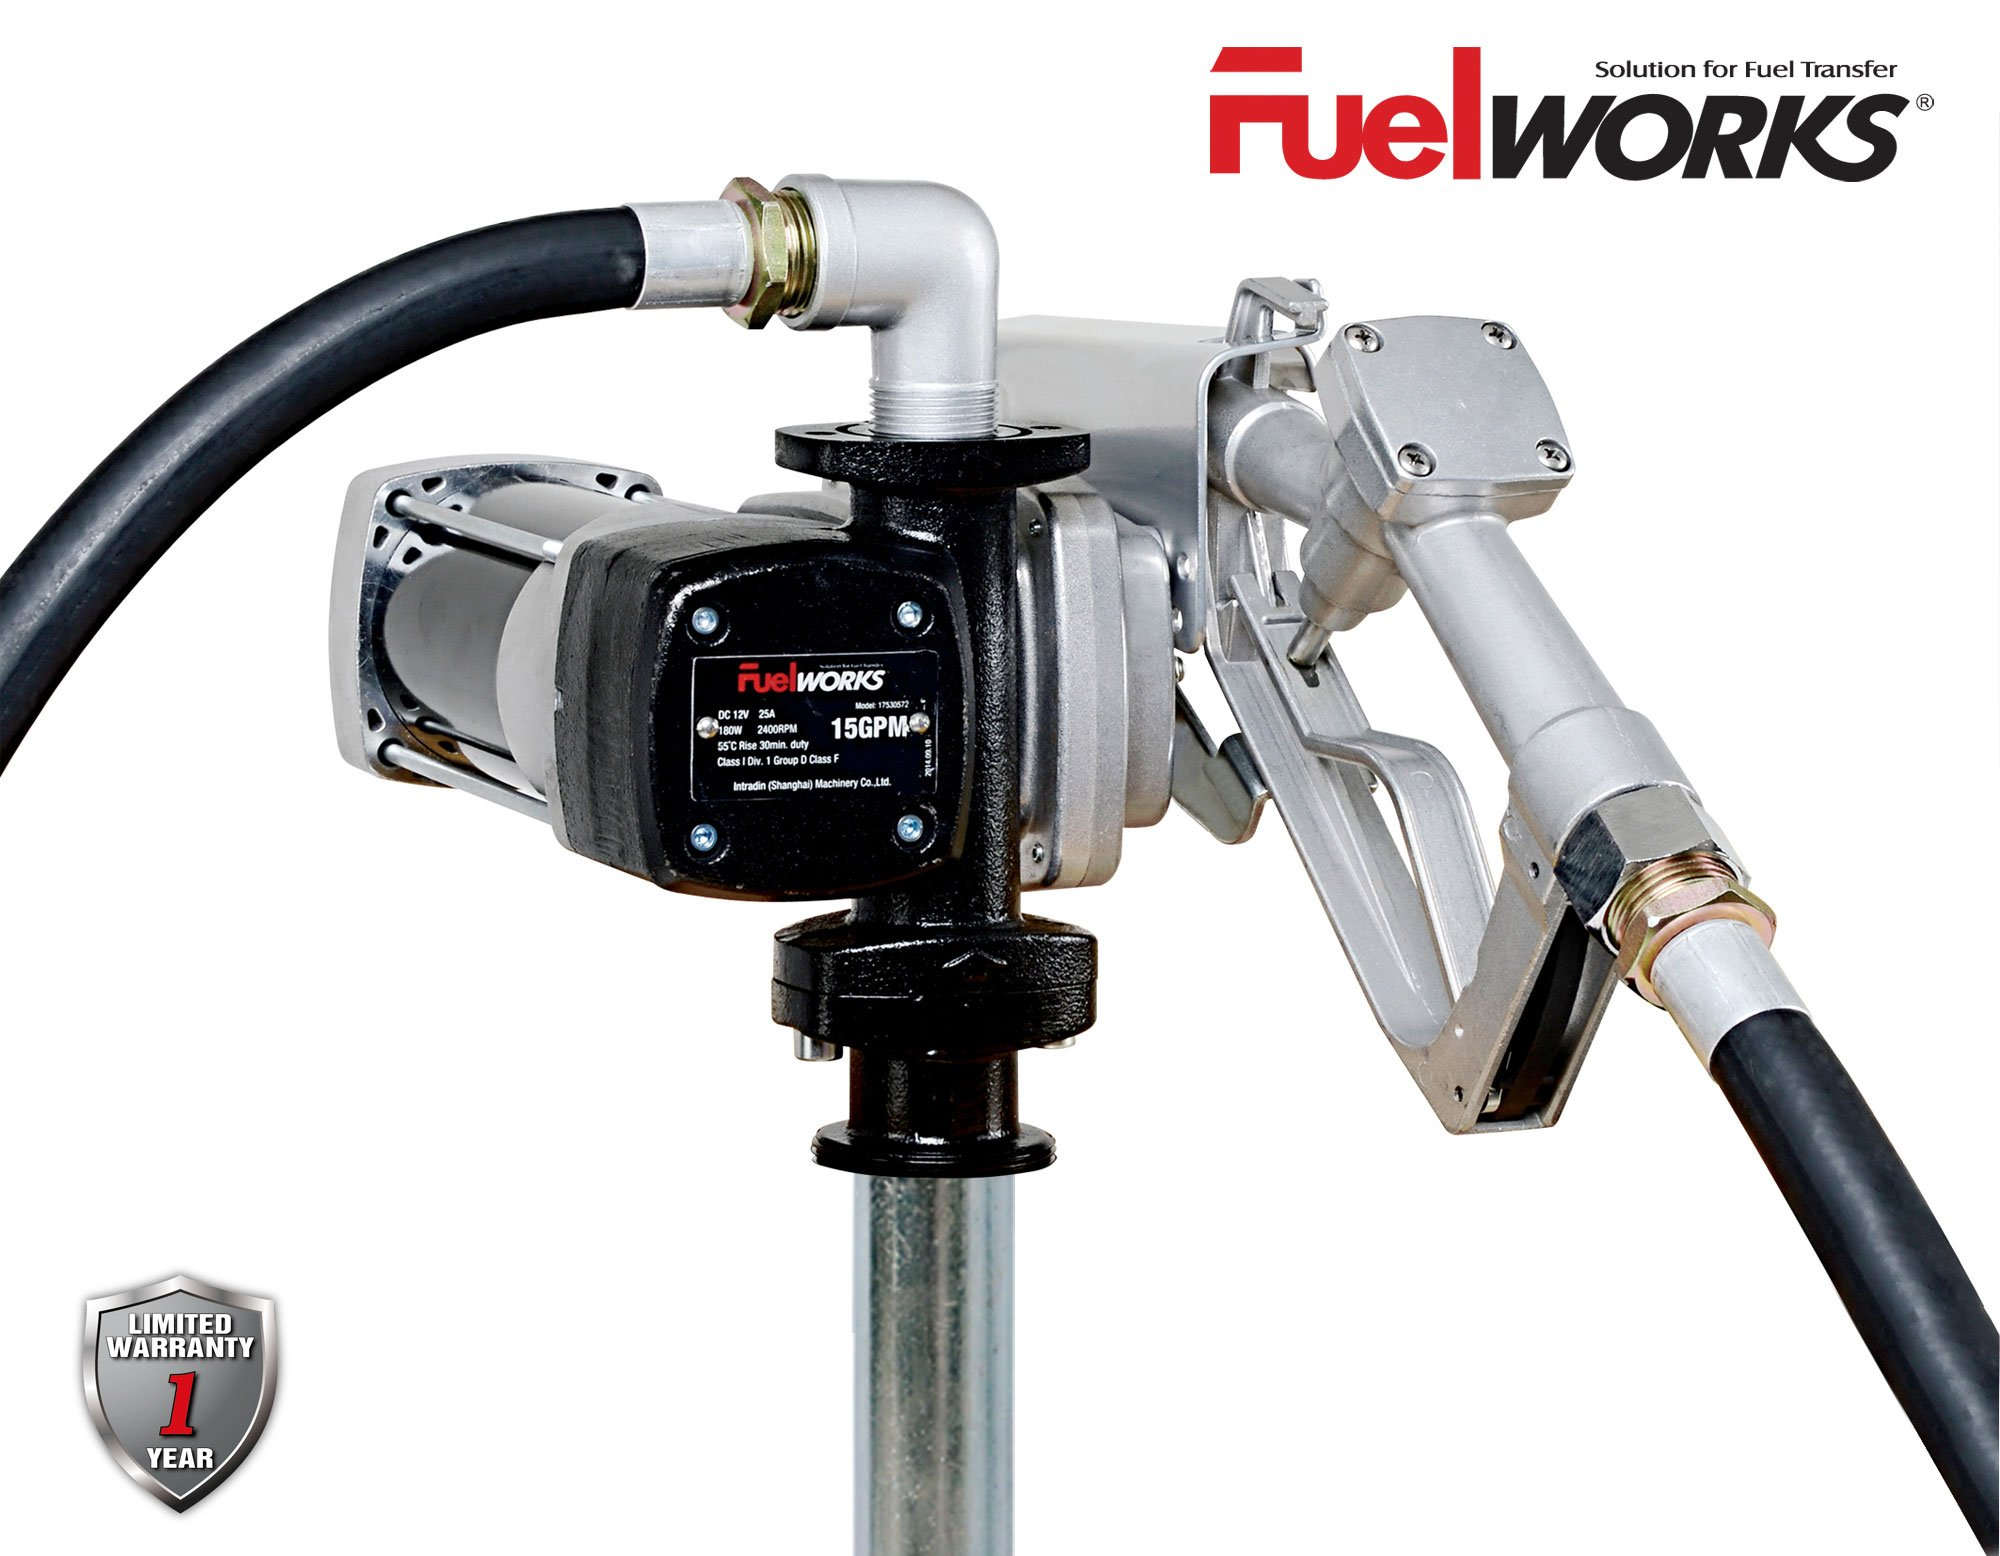 Fuelworks 10305708A 12V 15GPM Fuel Transfer Pump Kit with 14' Hose, Extensible Suction Tube and Manual Nozzle, Black by Fuelworks (Image #1)